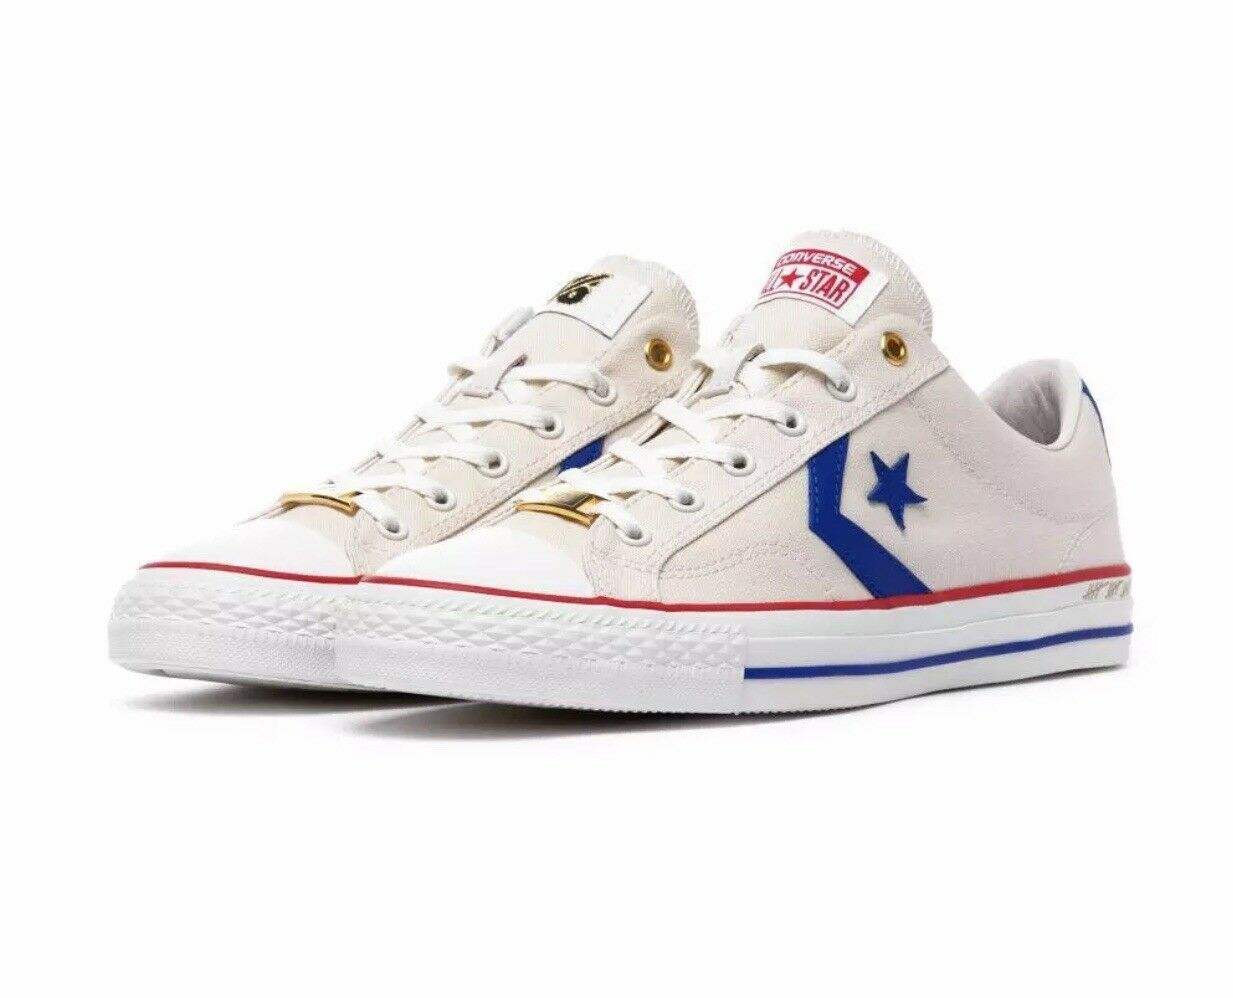 Converse Star Player OX intangibles THINK 16 Blanc PARCHHommesT 161409 C sz 10.5